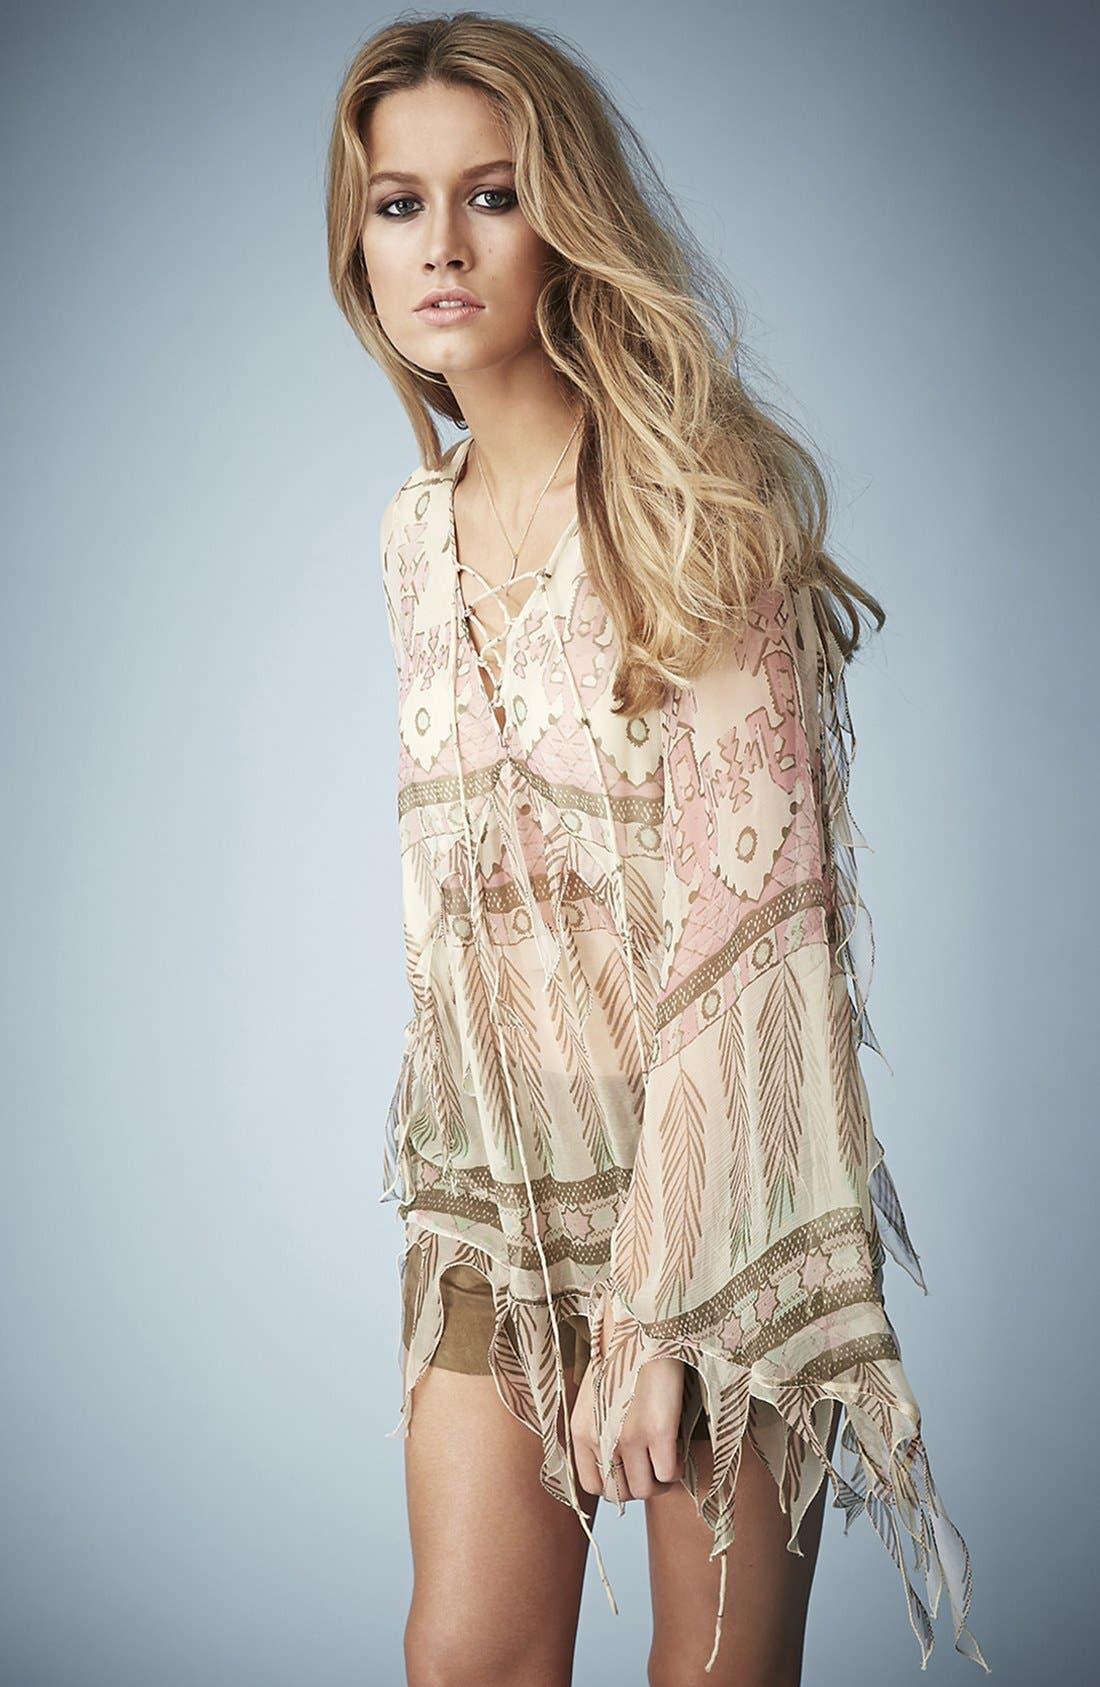 Main Image - Kate Moss for Topshop Tassel Feather Print Blouse